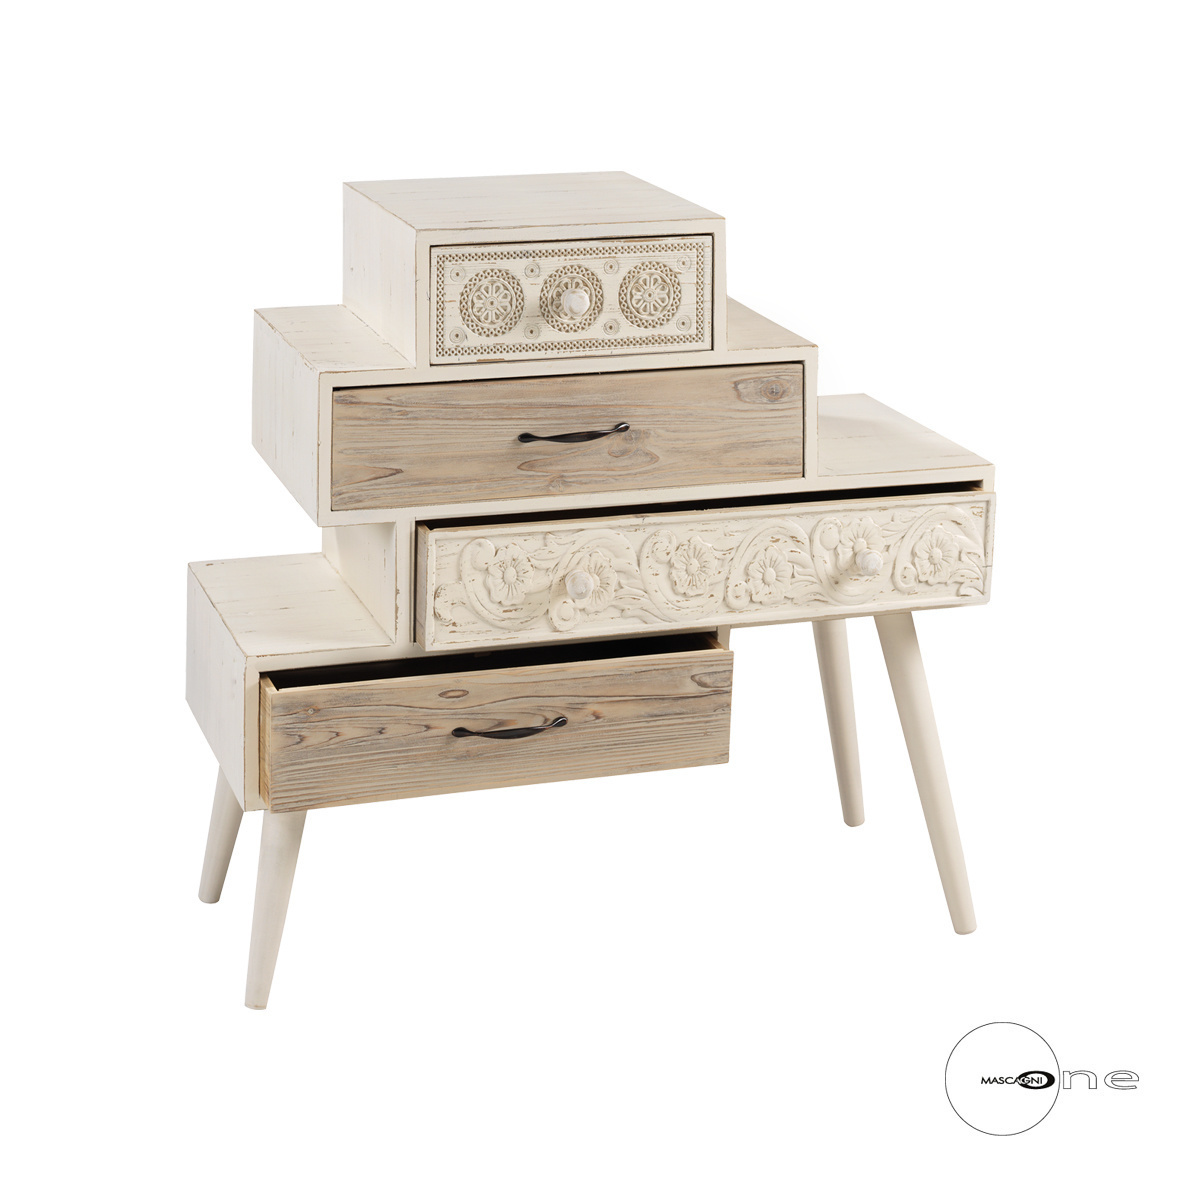 Art Mascagni O1409 CABINET 4 DRAWERS